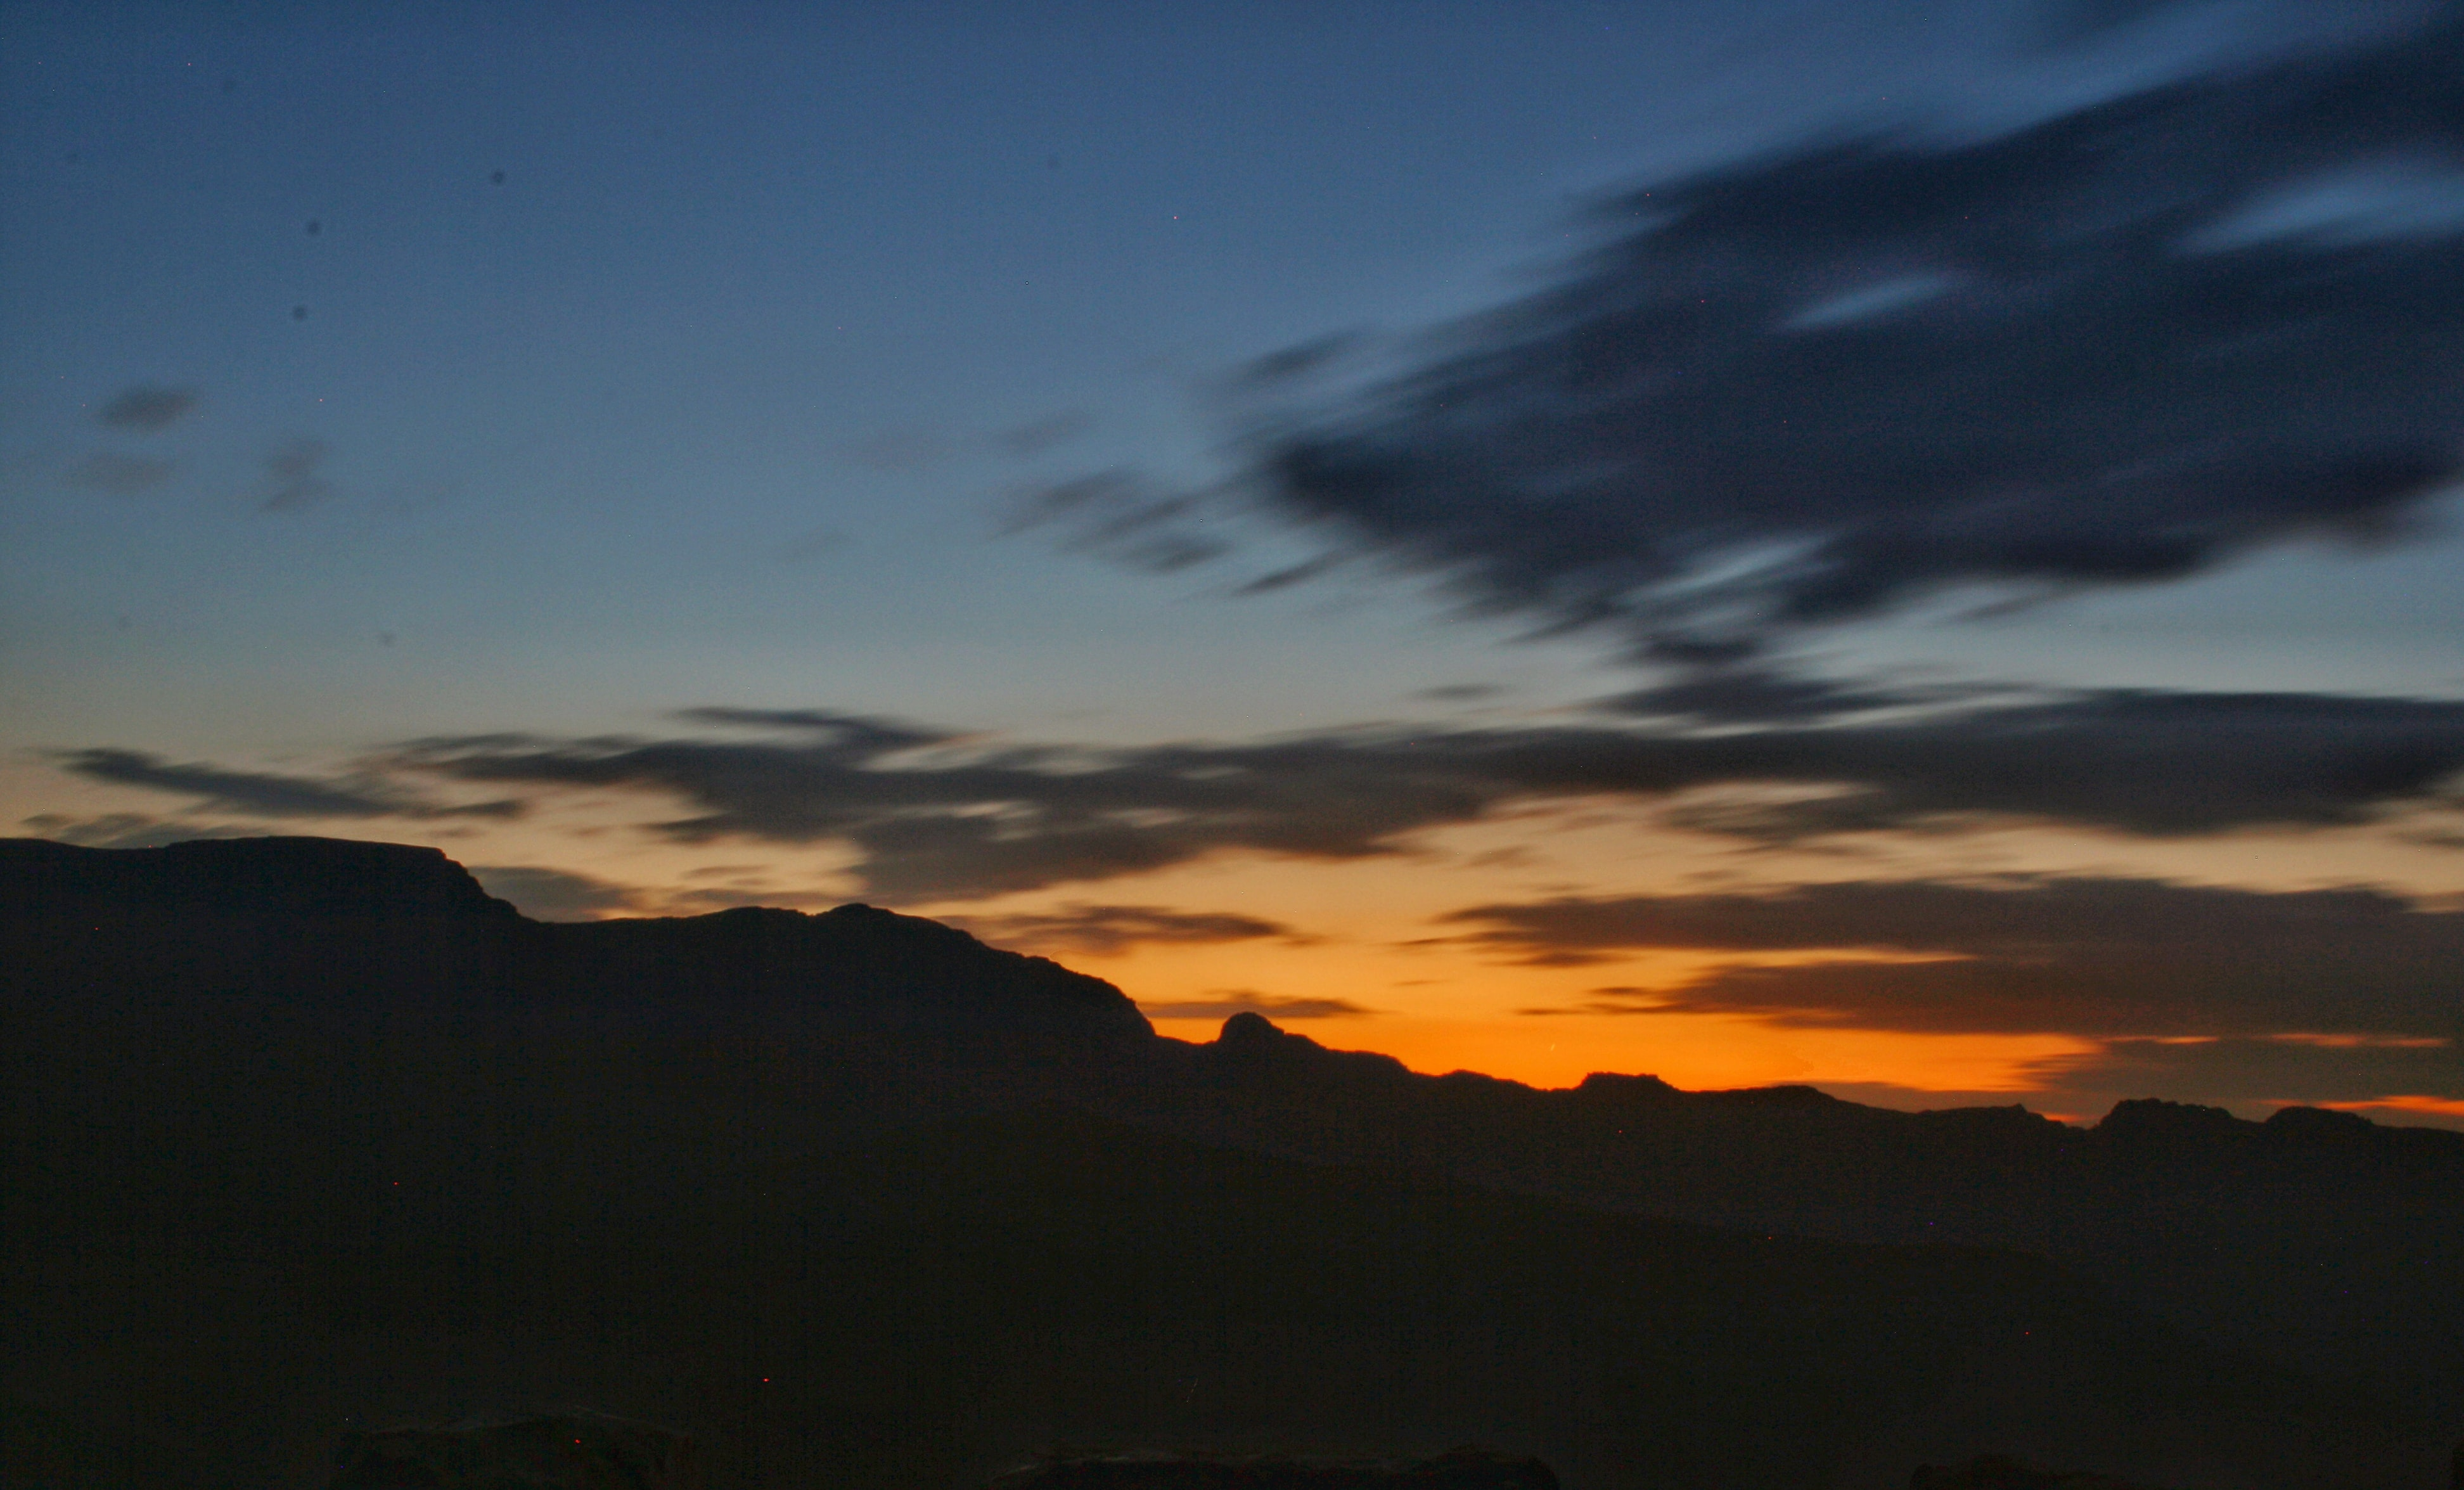 time-lapse photography of silhouette of mountains